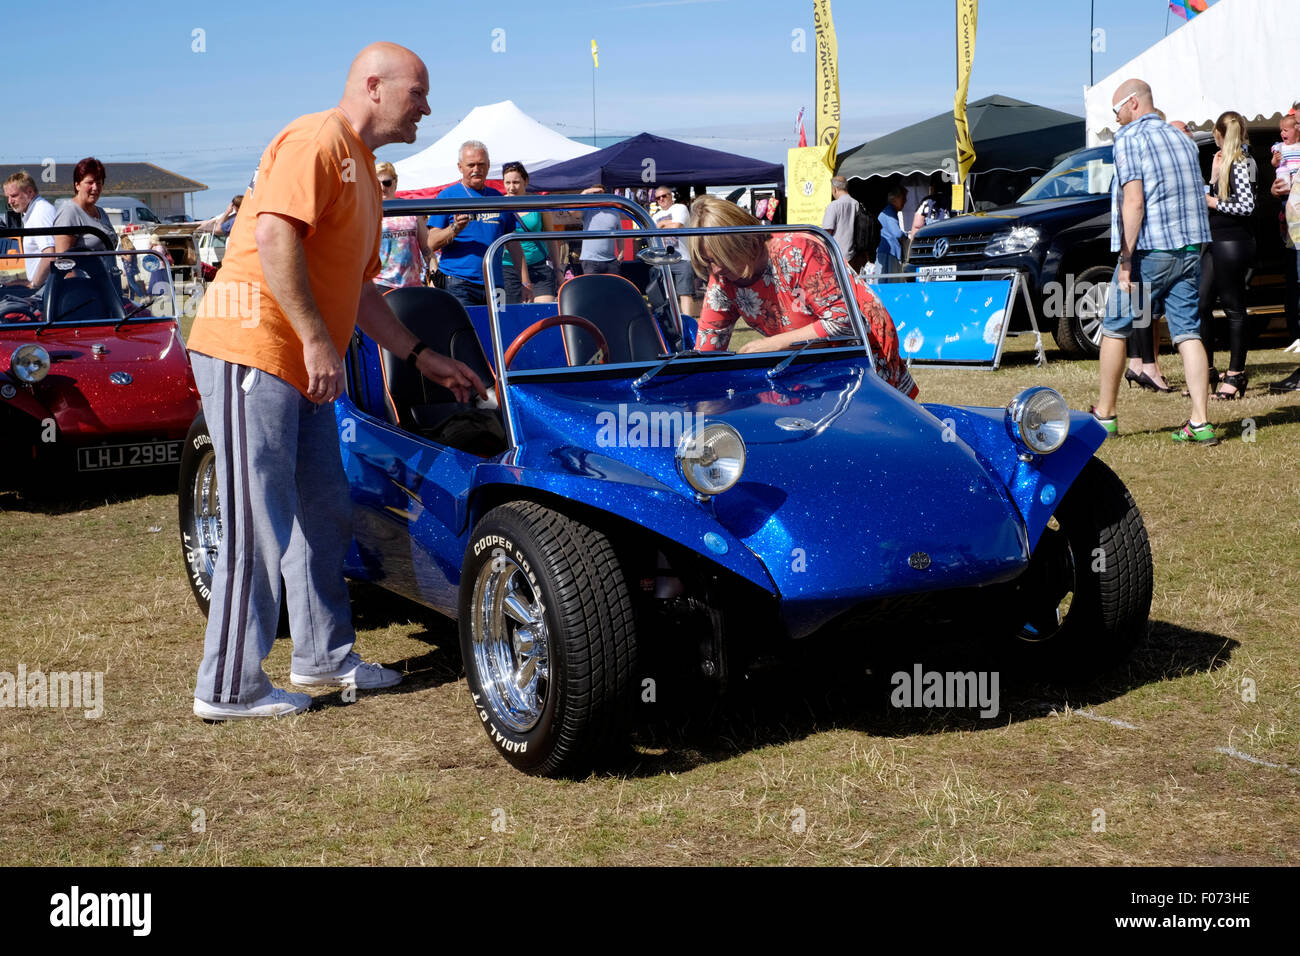 Beach Buggy Vw Stock Photos Beach Buggy Vw Stock Images Alamy - Vw car show this weekend